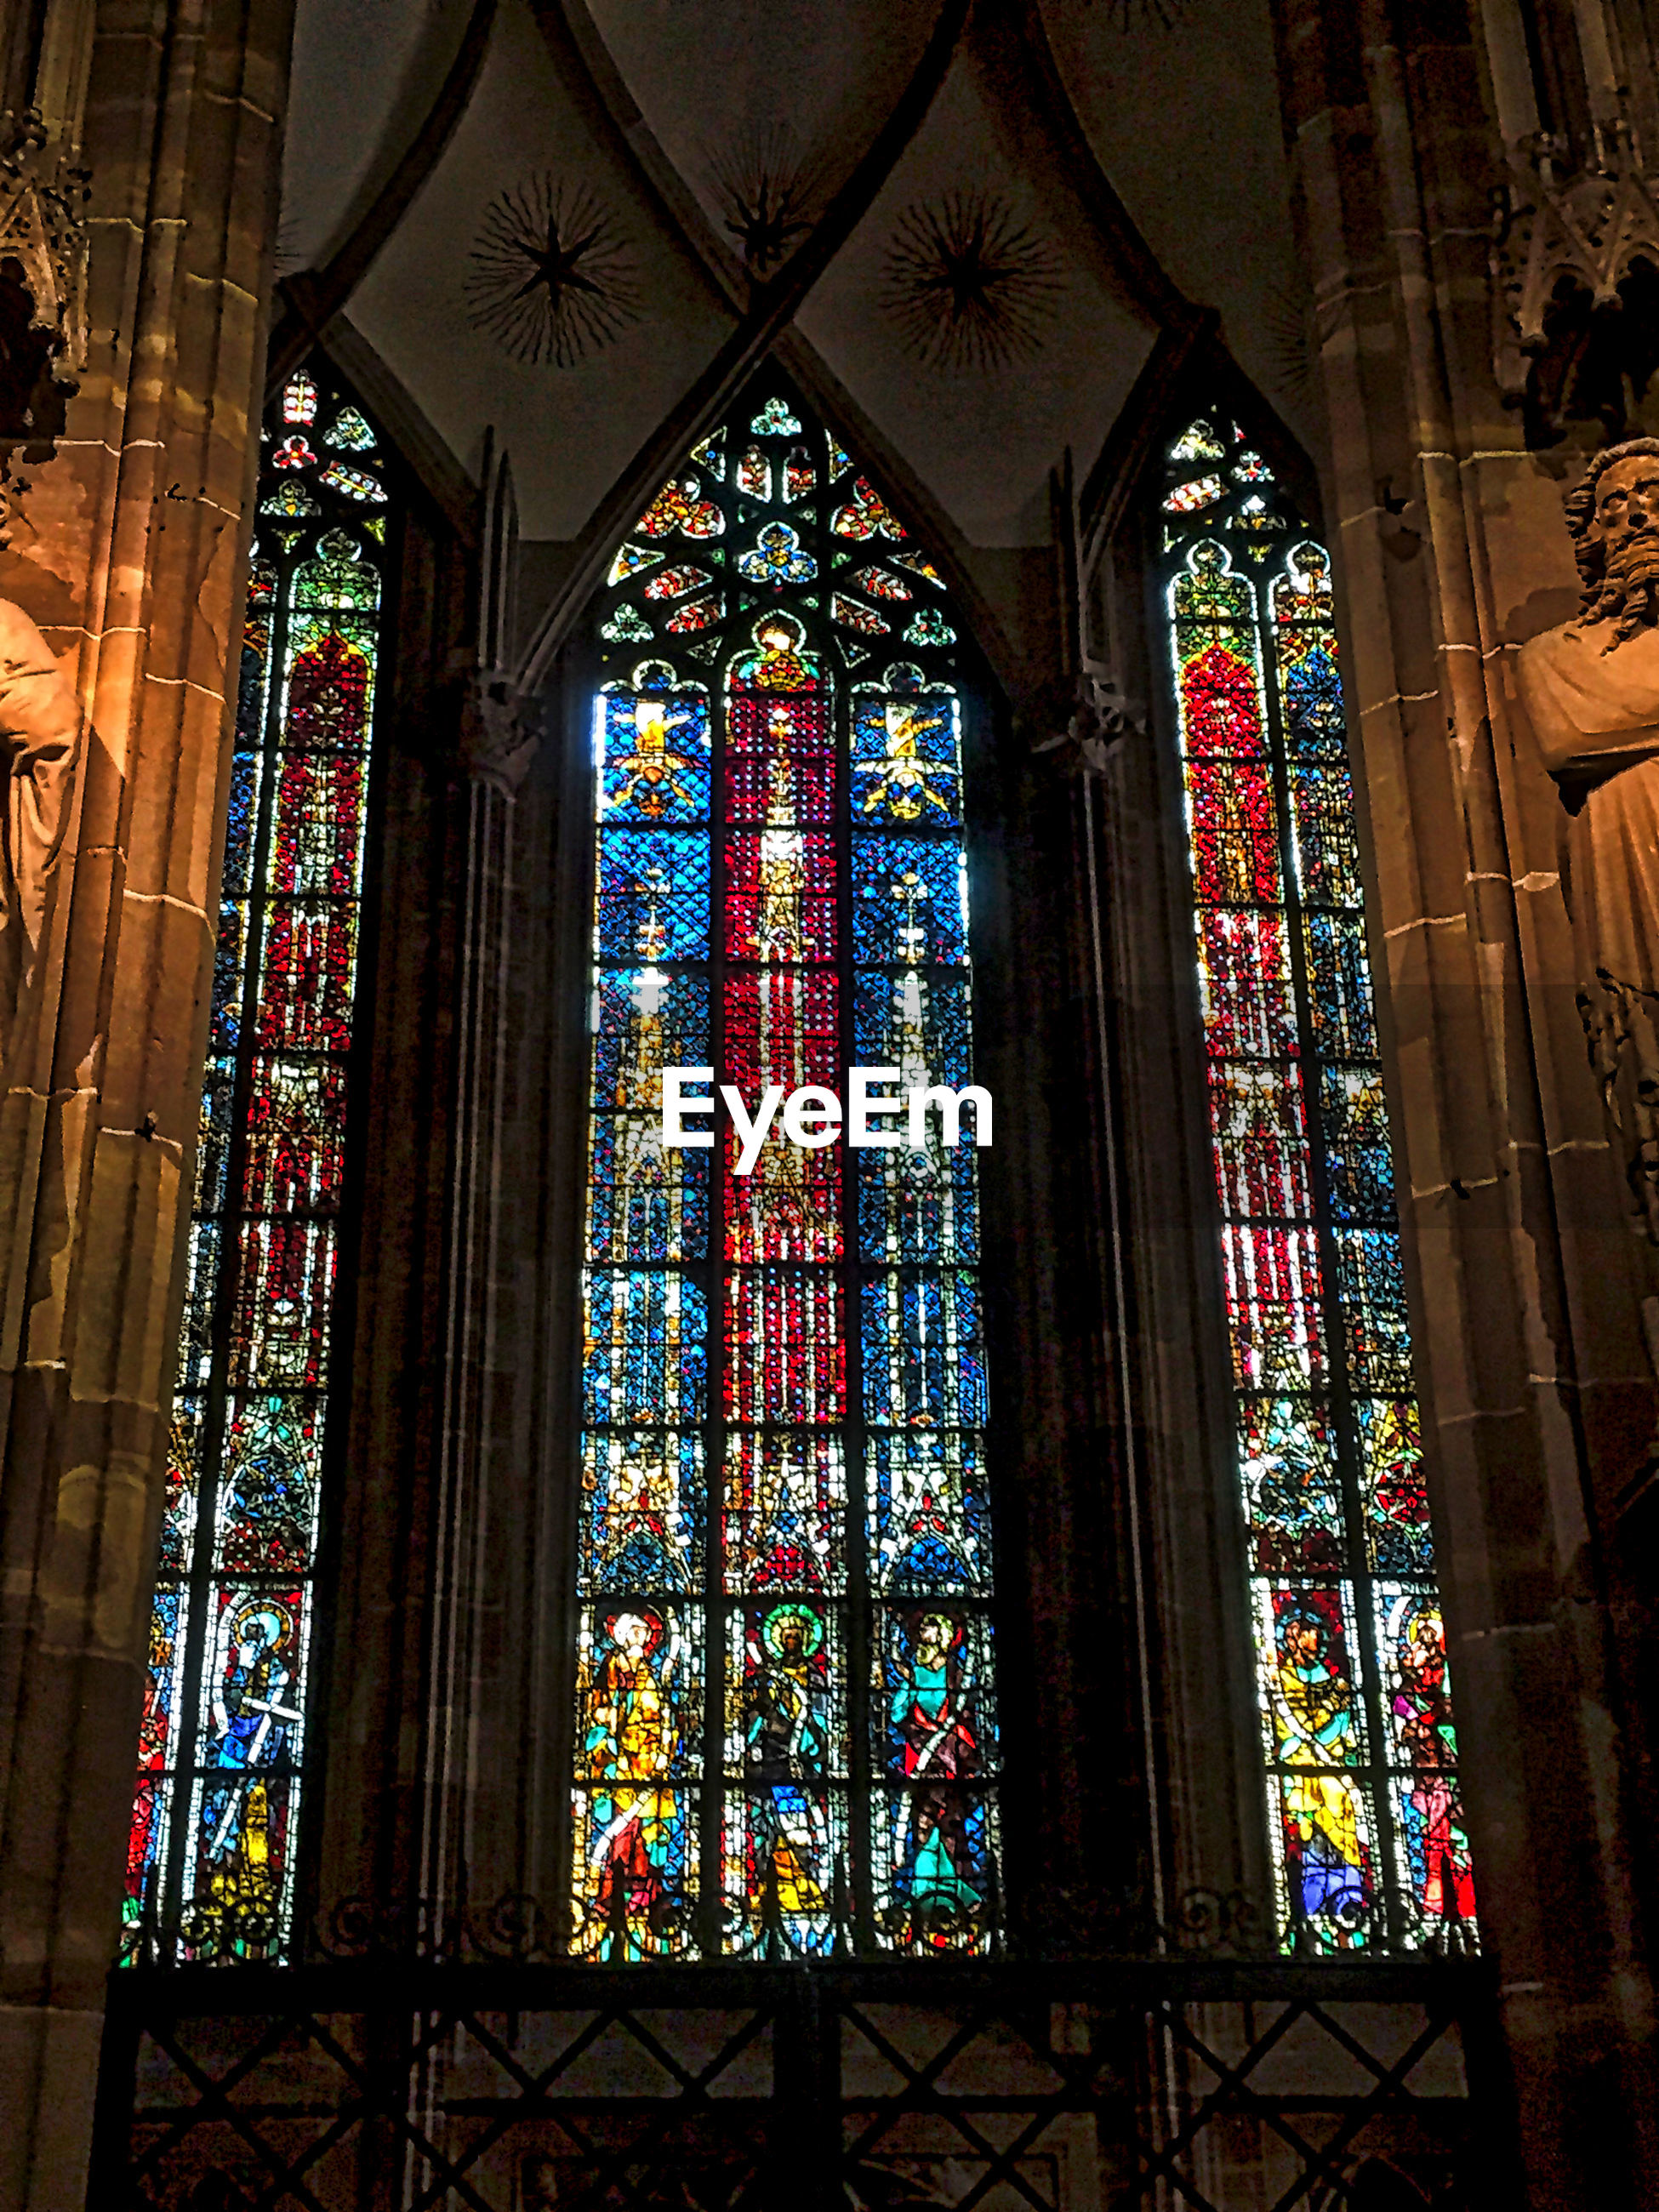 window, stained glass, multi colored, indoors, religion, spirituality, low angle view, art, place of worship, church, art and craft, ceiling, glass - material, colorful, glass, multicolored, architectural column, tranquility, art product, architecture and art, creativity, red color